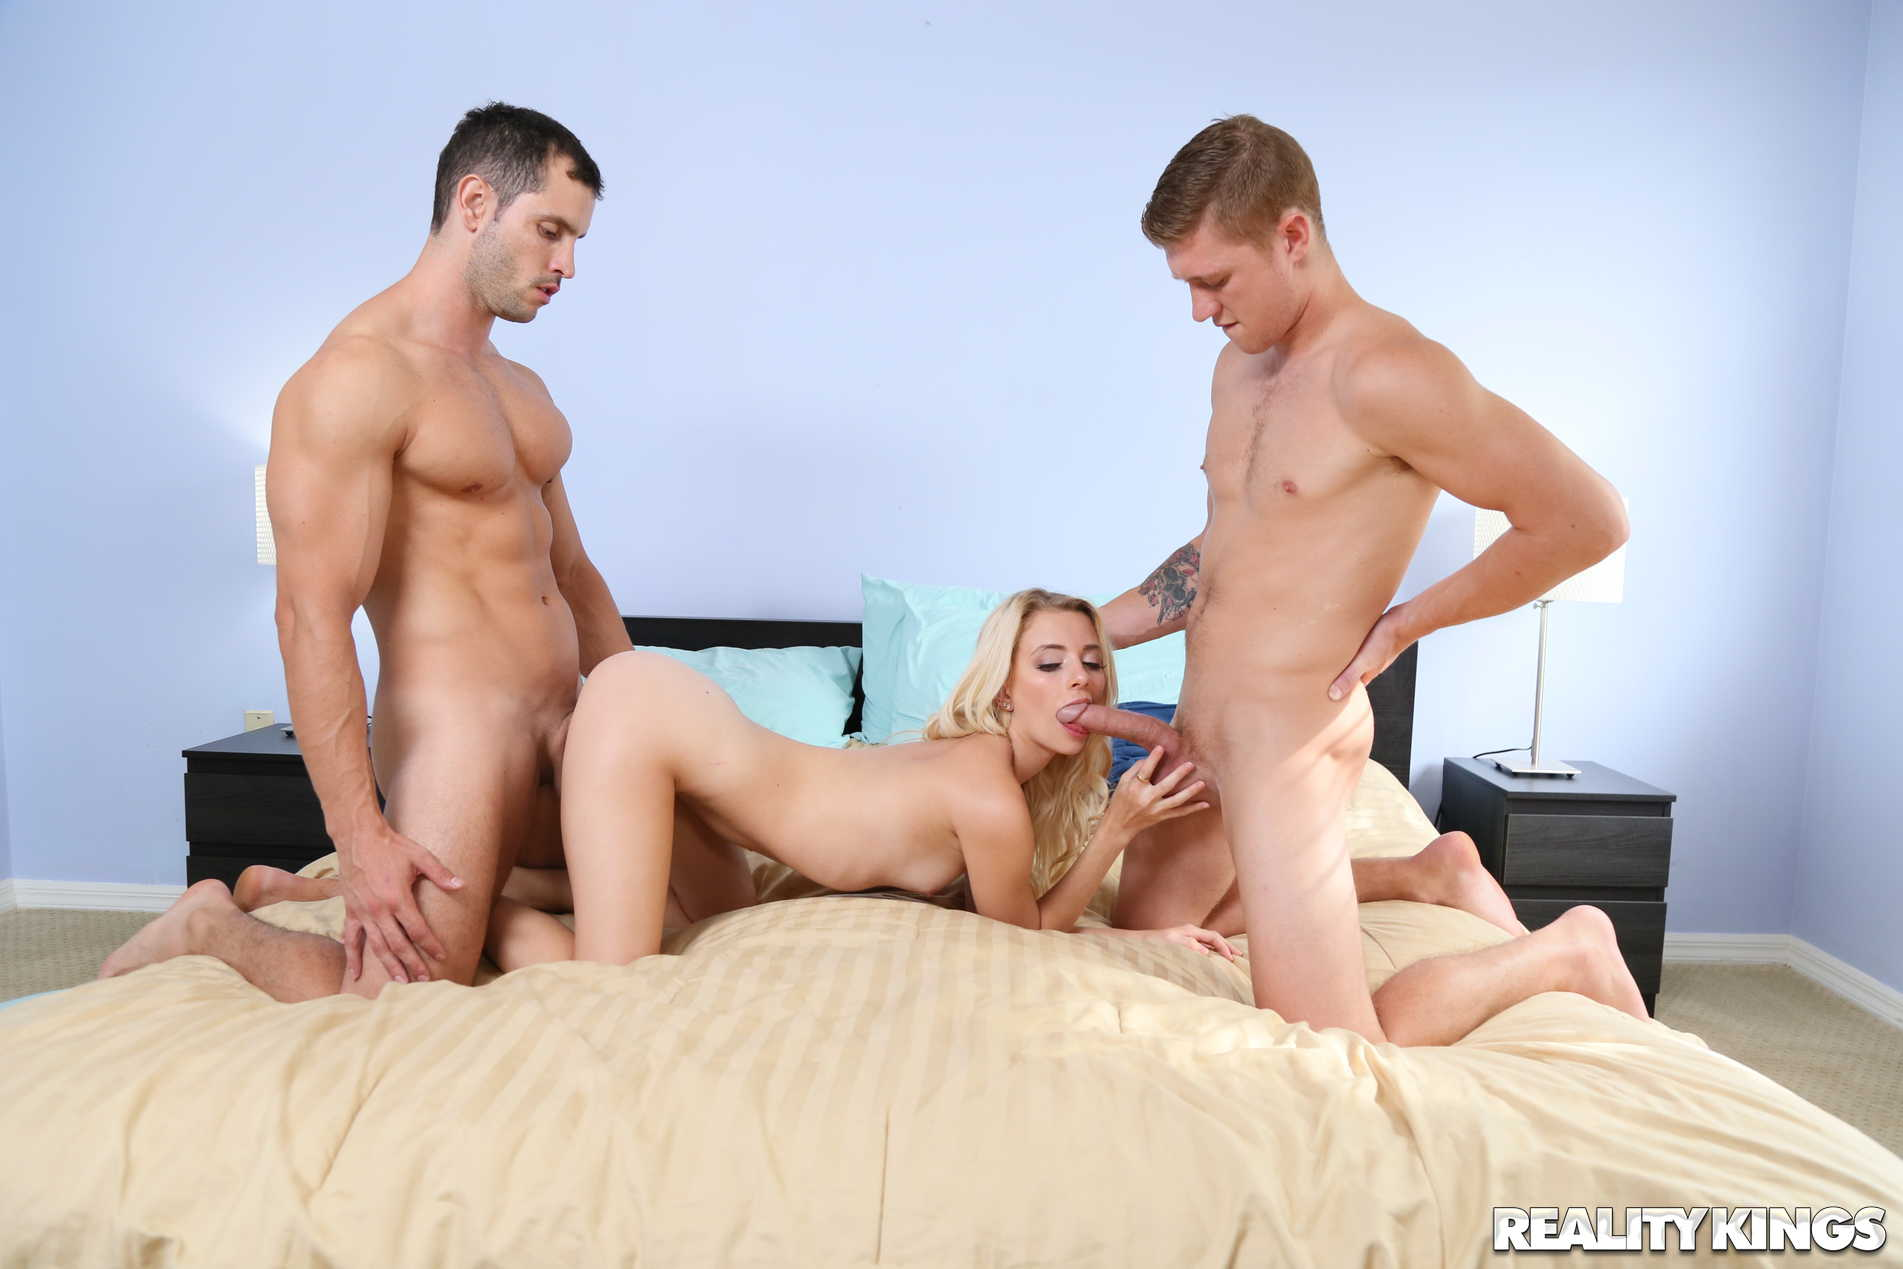 Reality Kings 'Miss 24 7' starring Riley Star (Photo 143)